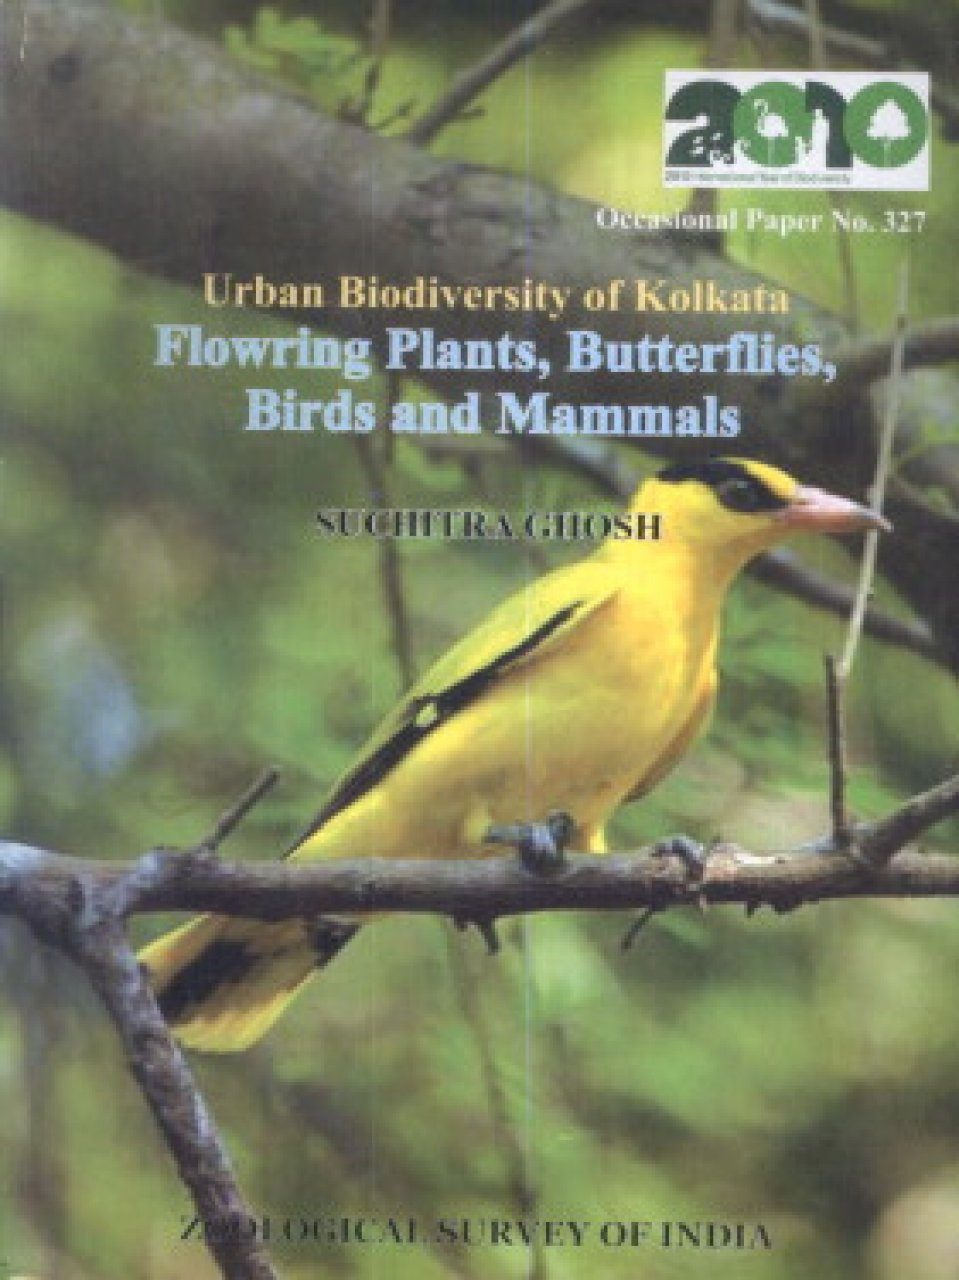 Urban Biodiversity of Calcutta